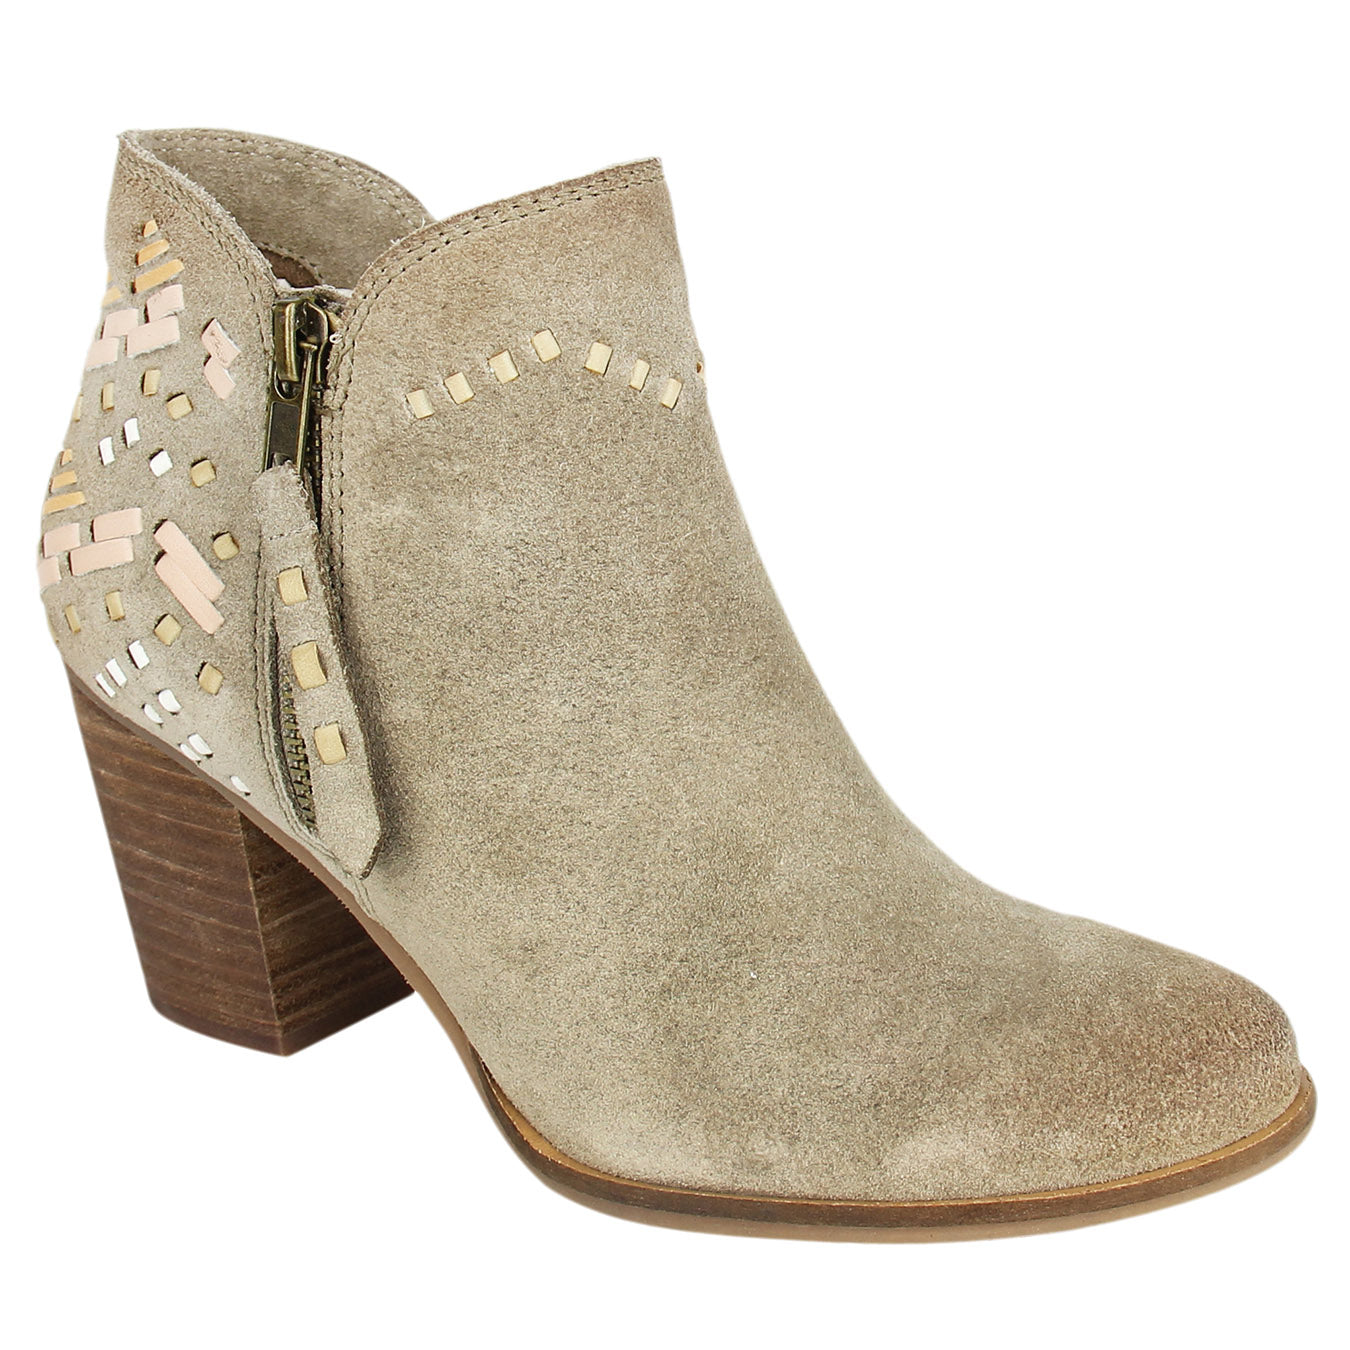 NAUGHTY_MONKEY_HAND-CRAFT_BOOT_SUEDE_BOOTIE_LUPINA_LIGHT-TAUPE